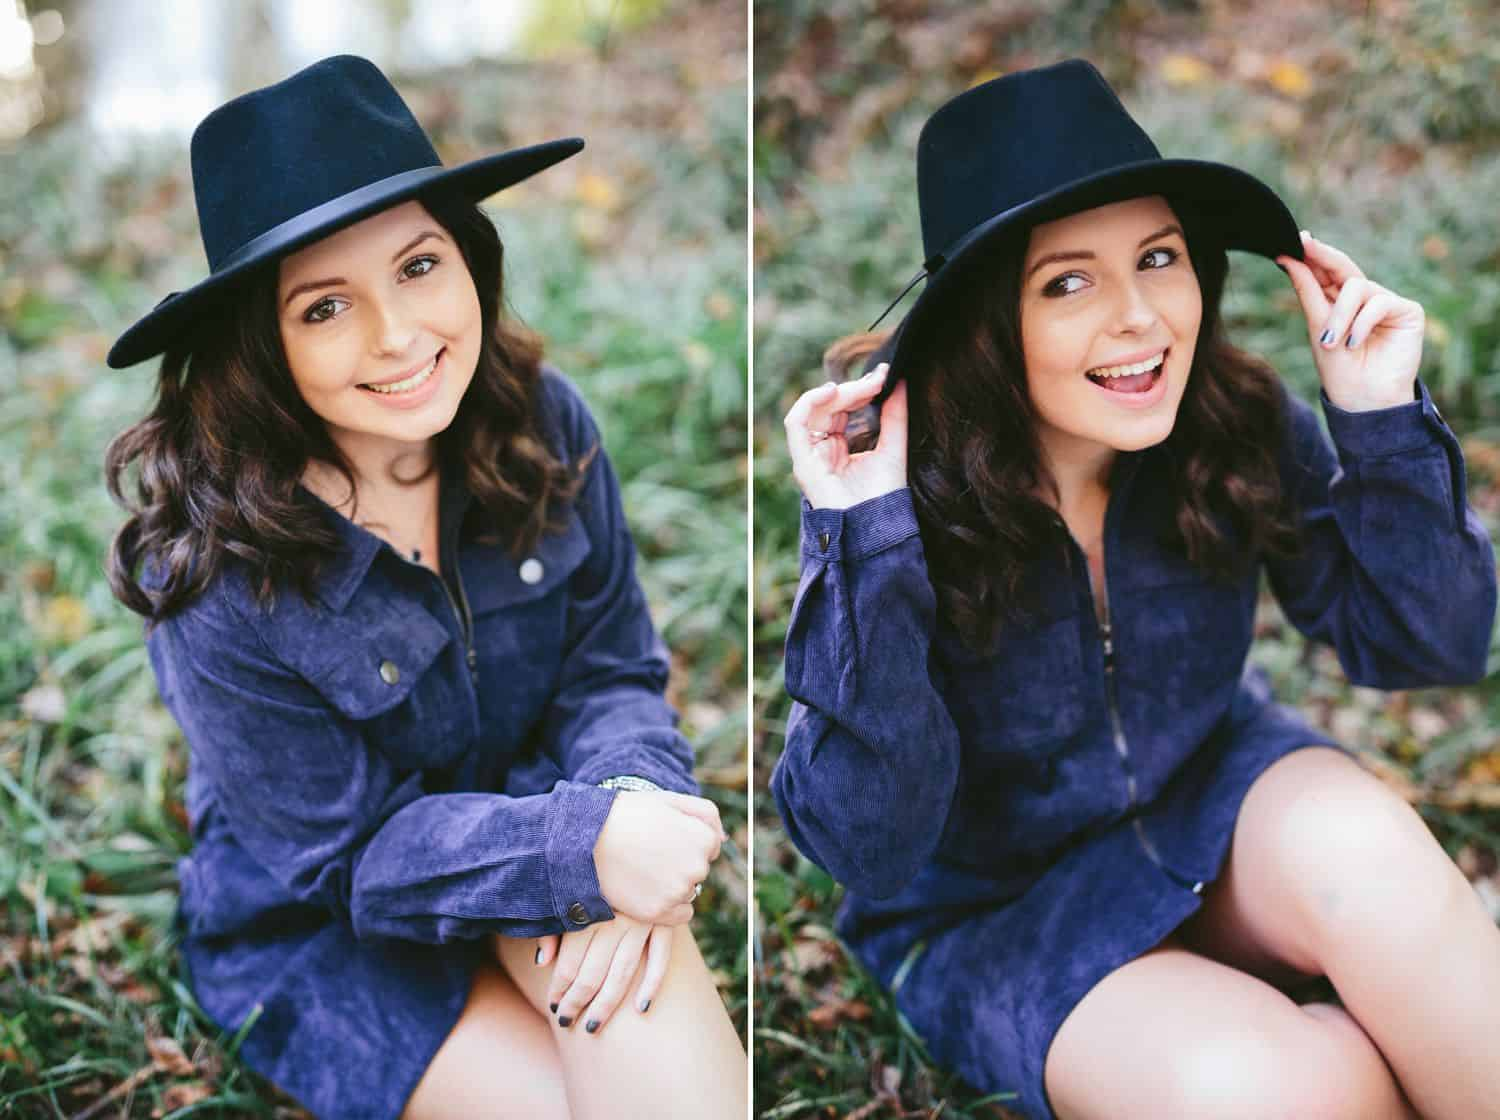 A high school senior girl poses in a denim dress and a black boho hat